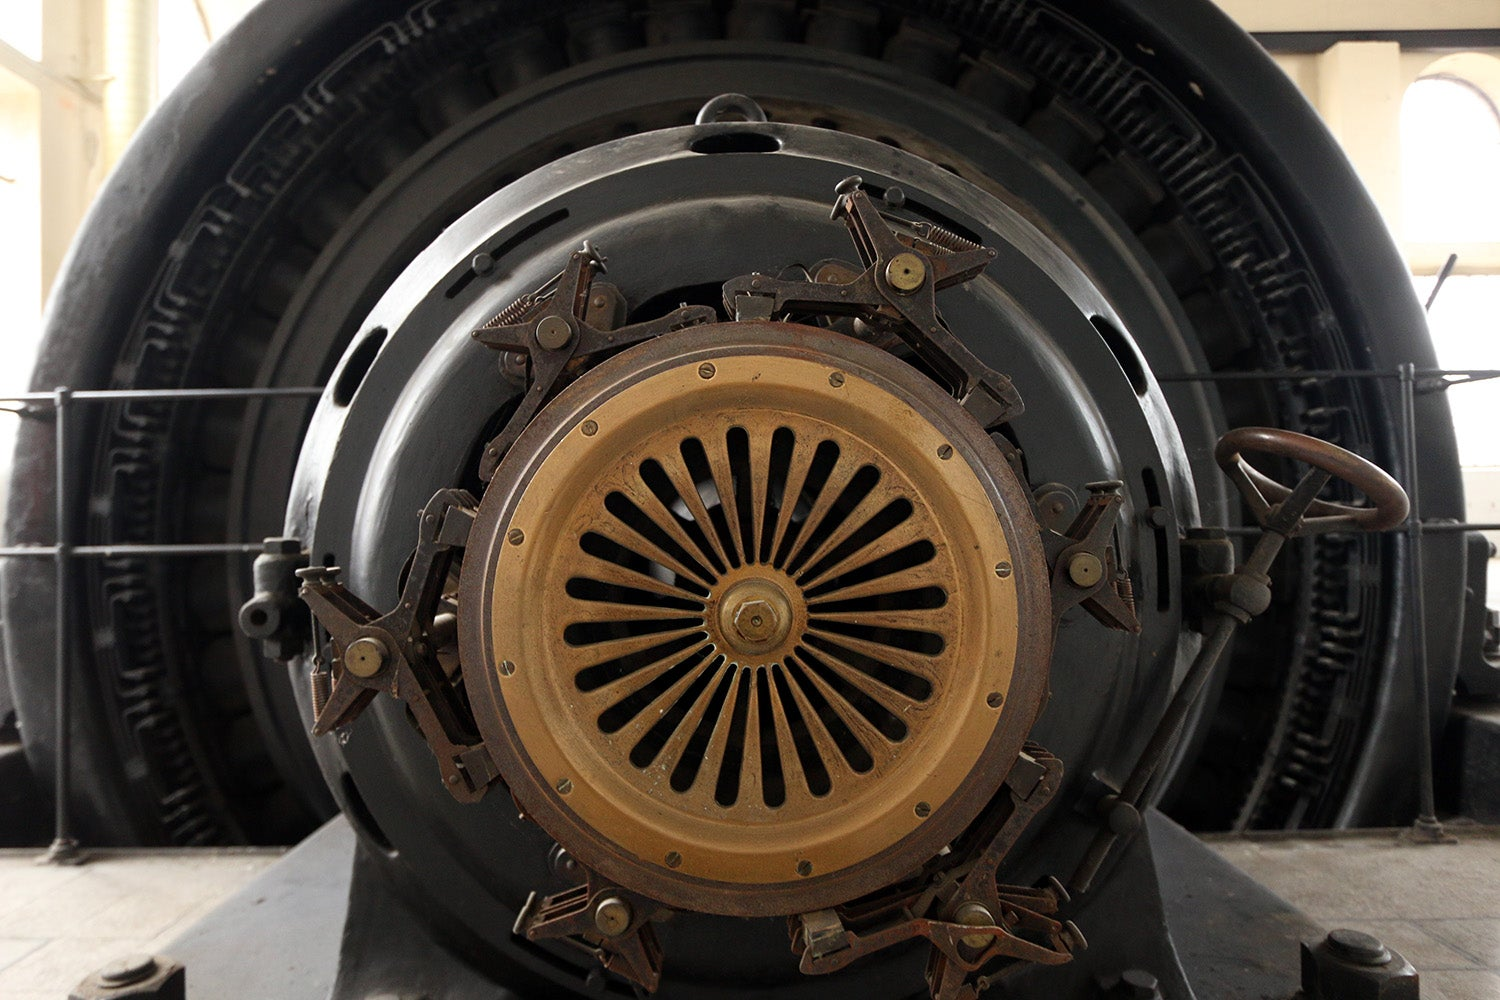 This Dieselpunk Shrine Hides a Century-Old, Fully Operational 800 HP Motor